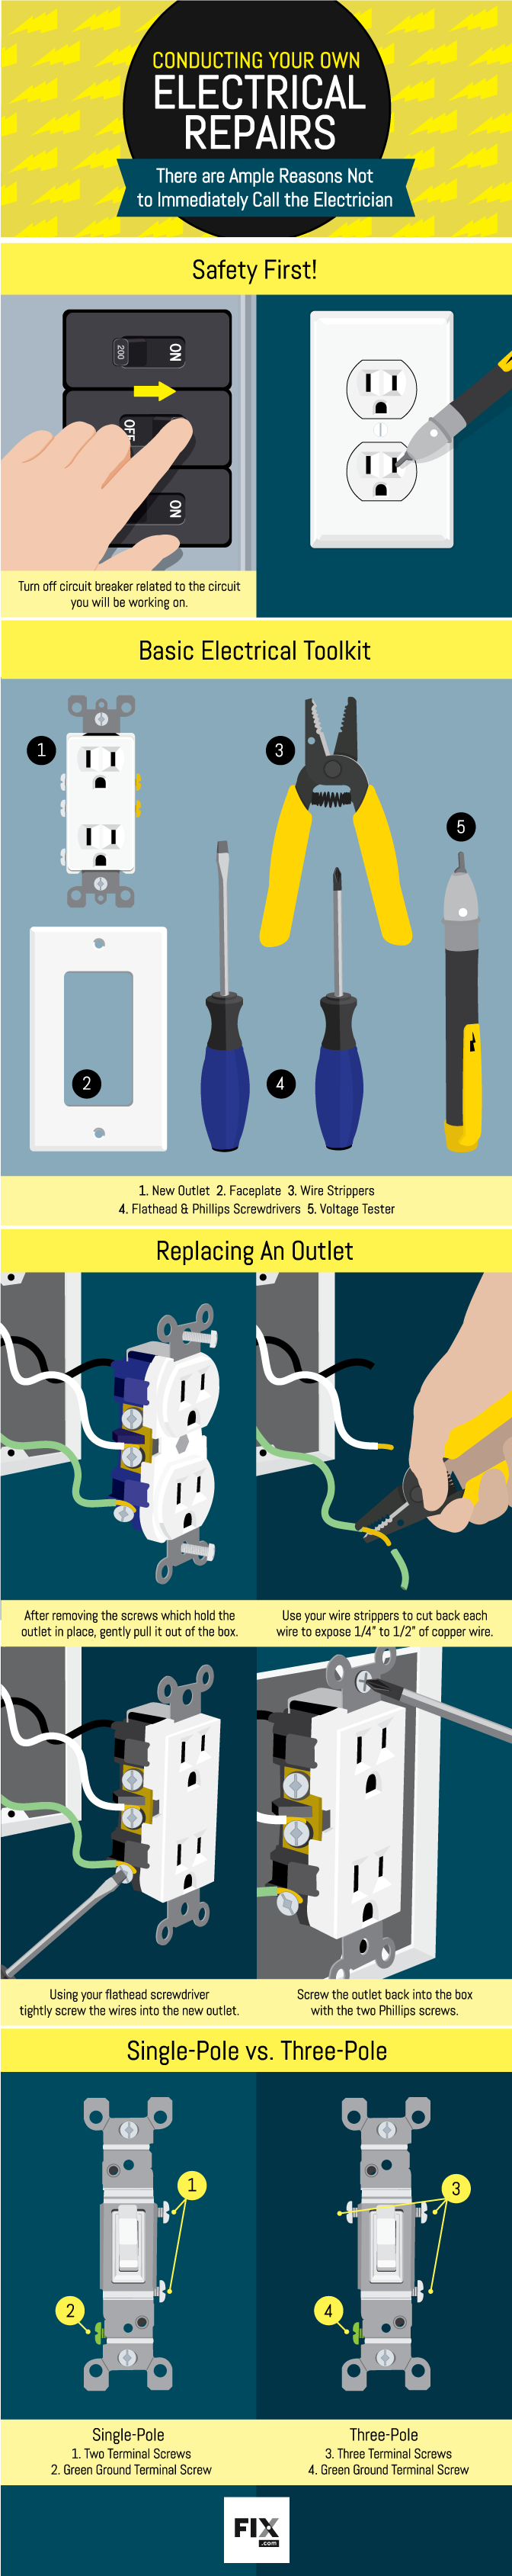 What Is A Ground Fault Circuit Interrupter Angies List